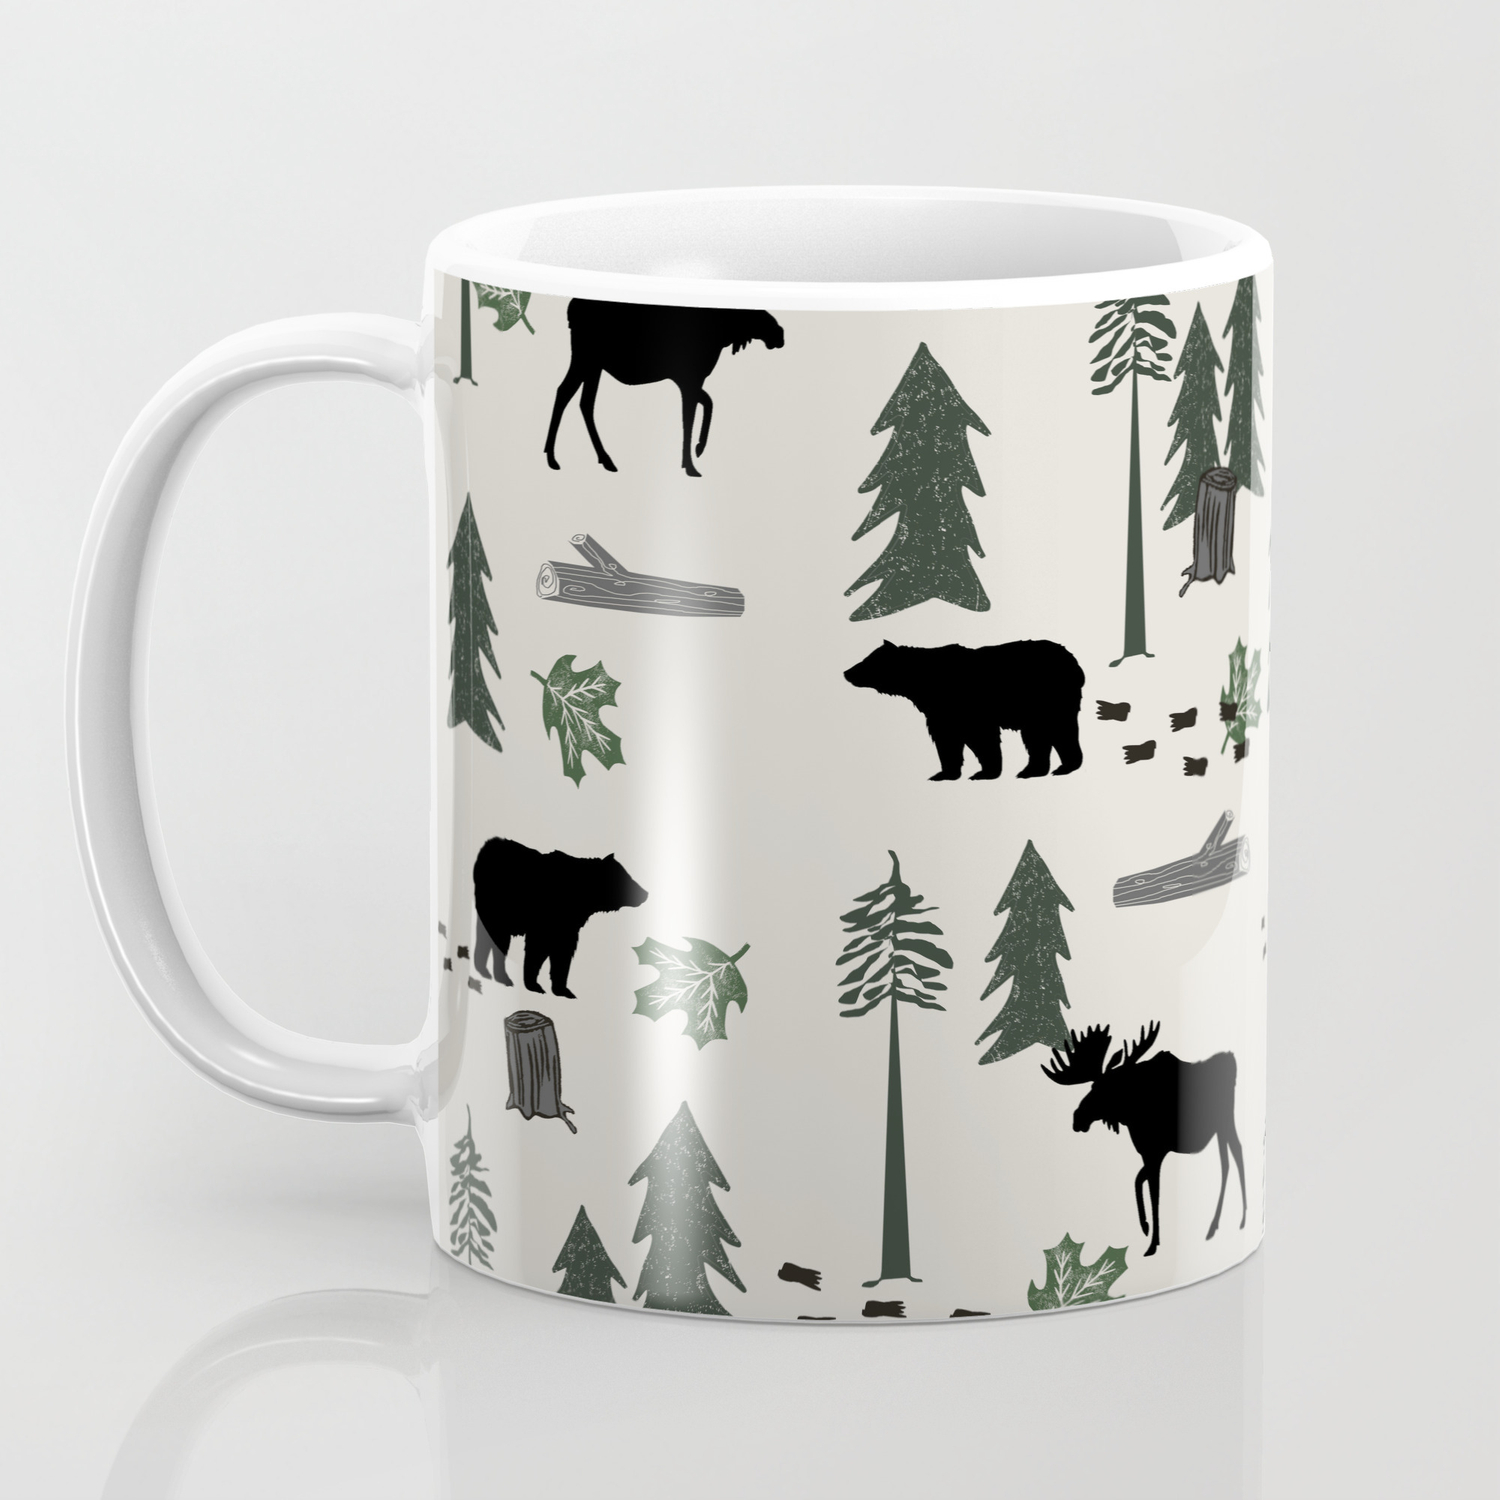 Camping woodland forest nature moose